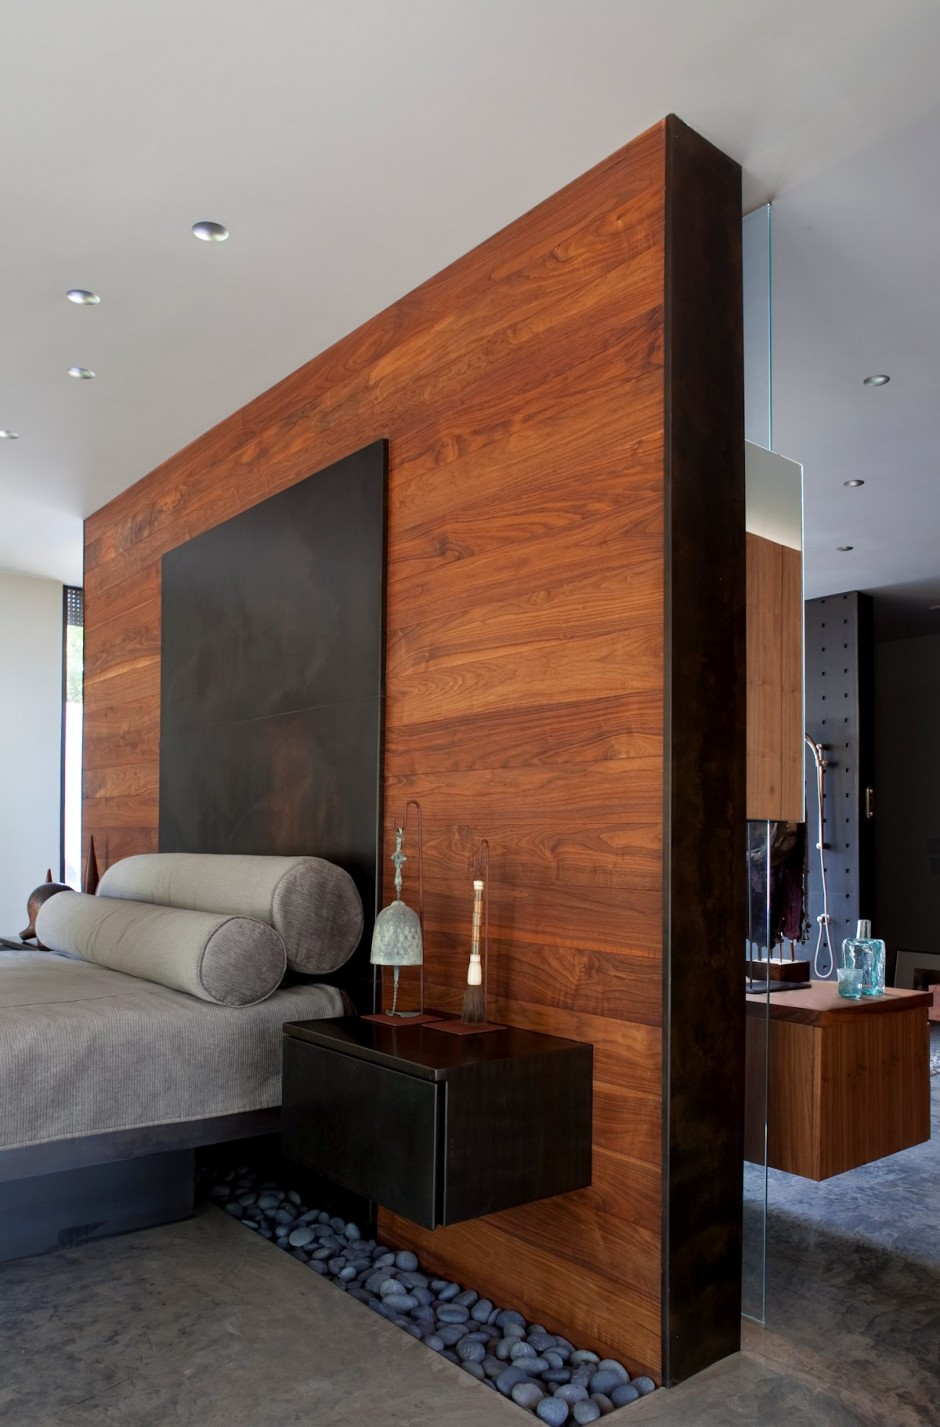 https://cdn.homedit.com/wp-content/uploads/2014/07/bedroom-wood-accent-wall-master-design.jpg